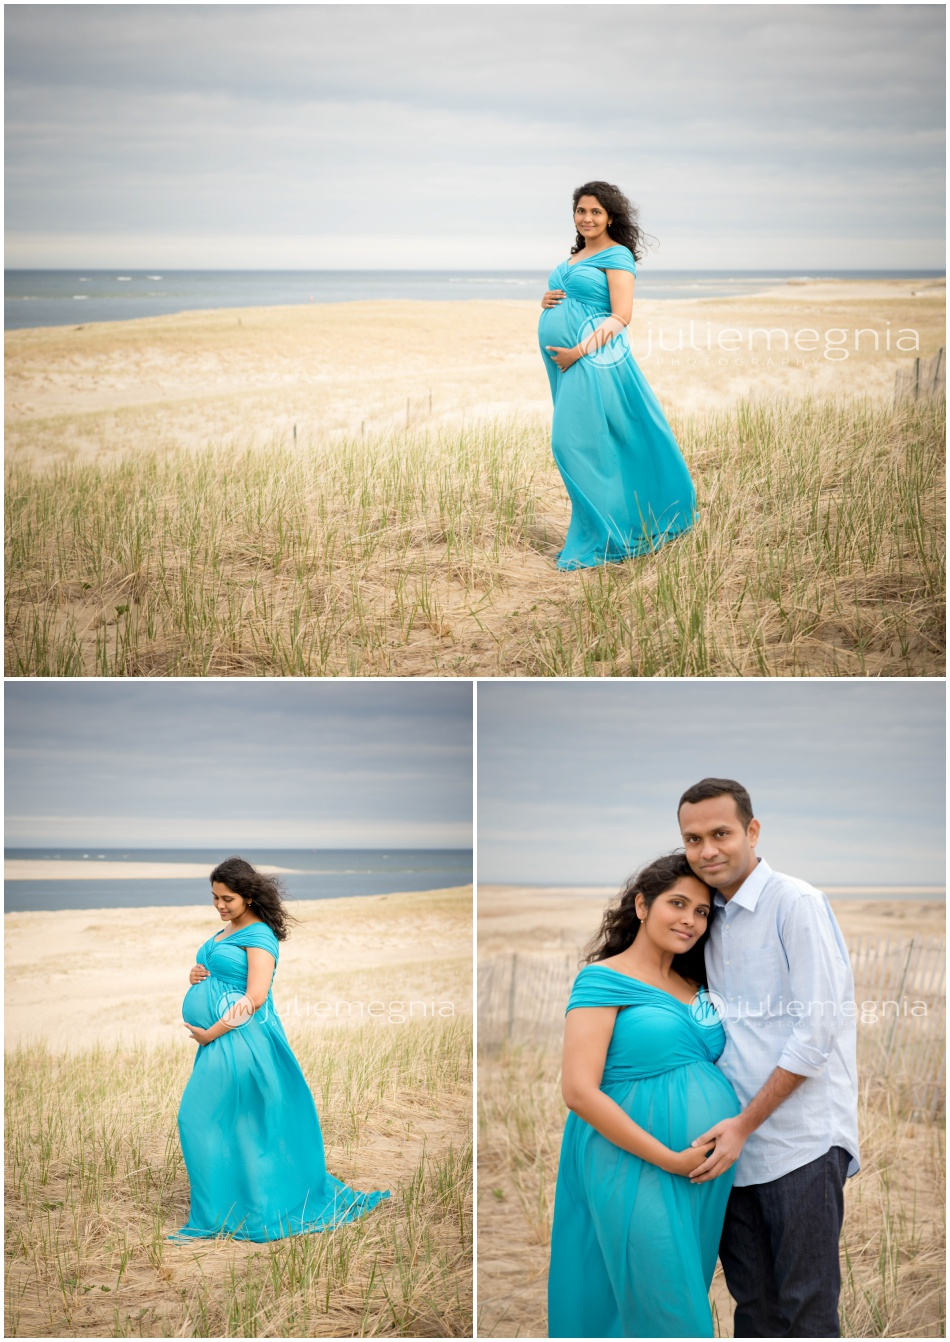 Chatham Beach Maternity Portraits_Peacock Blue Dress_Julie Megnia Photography